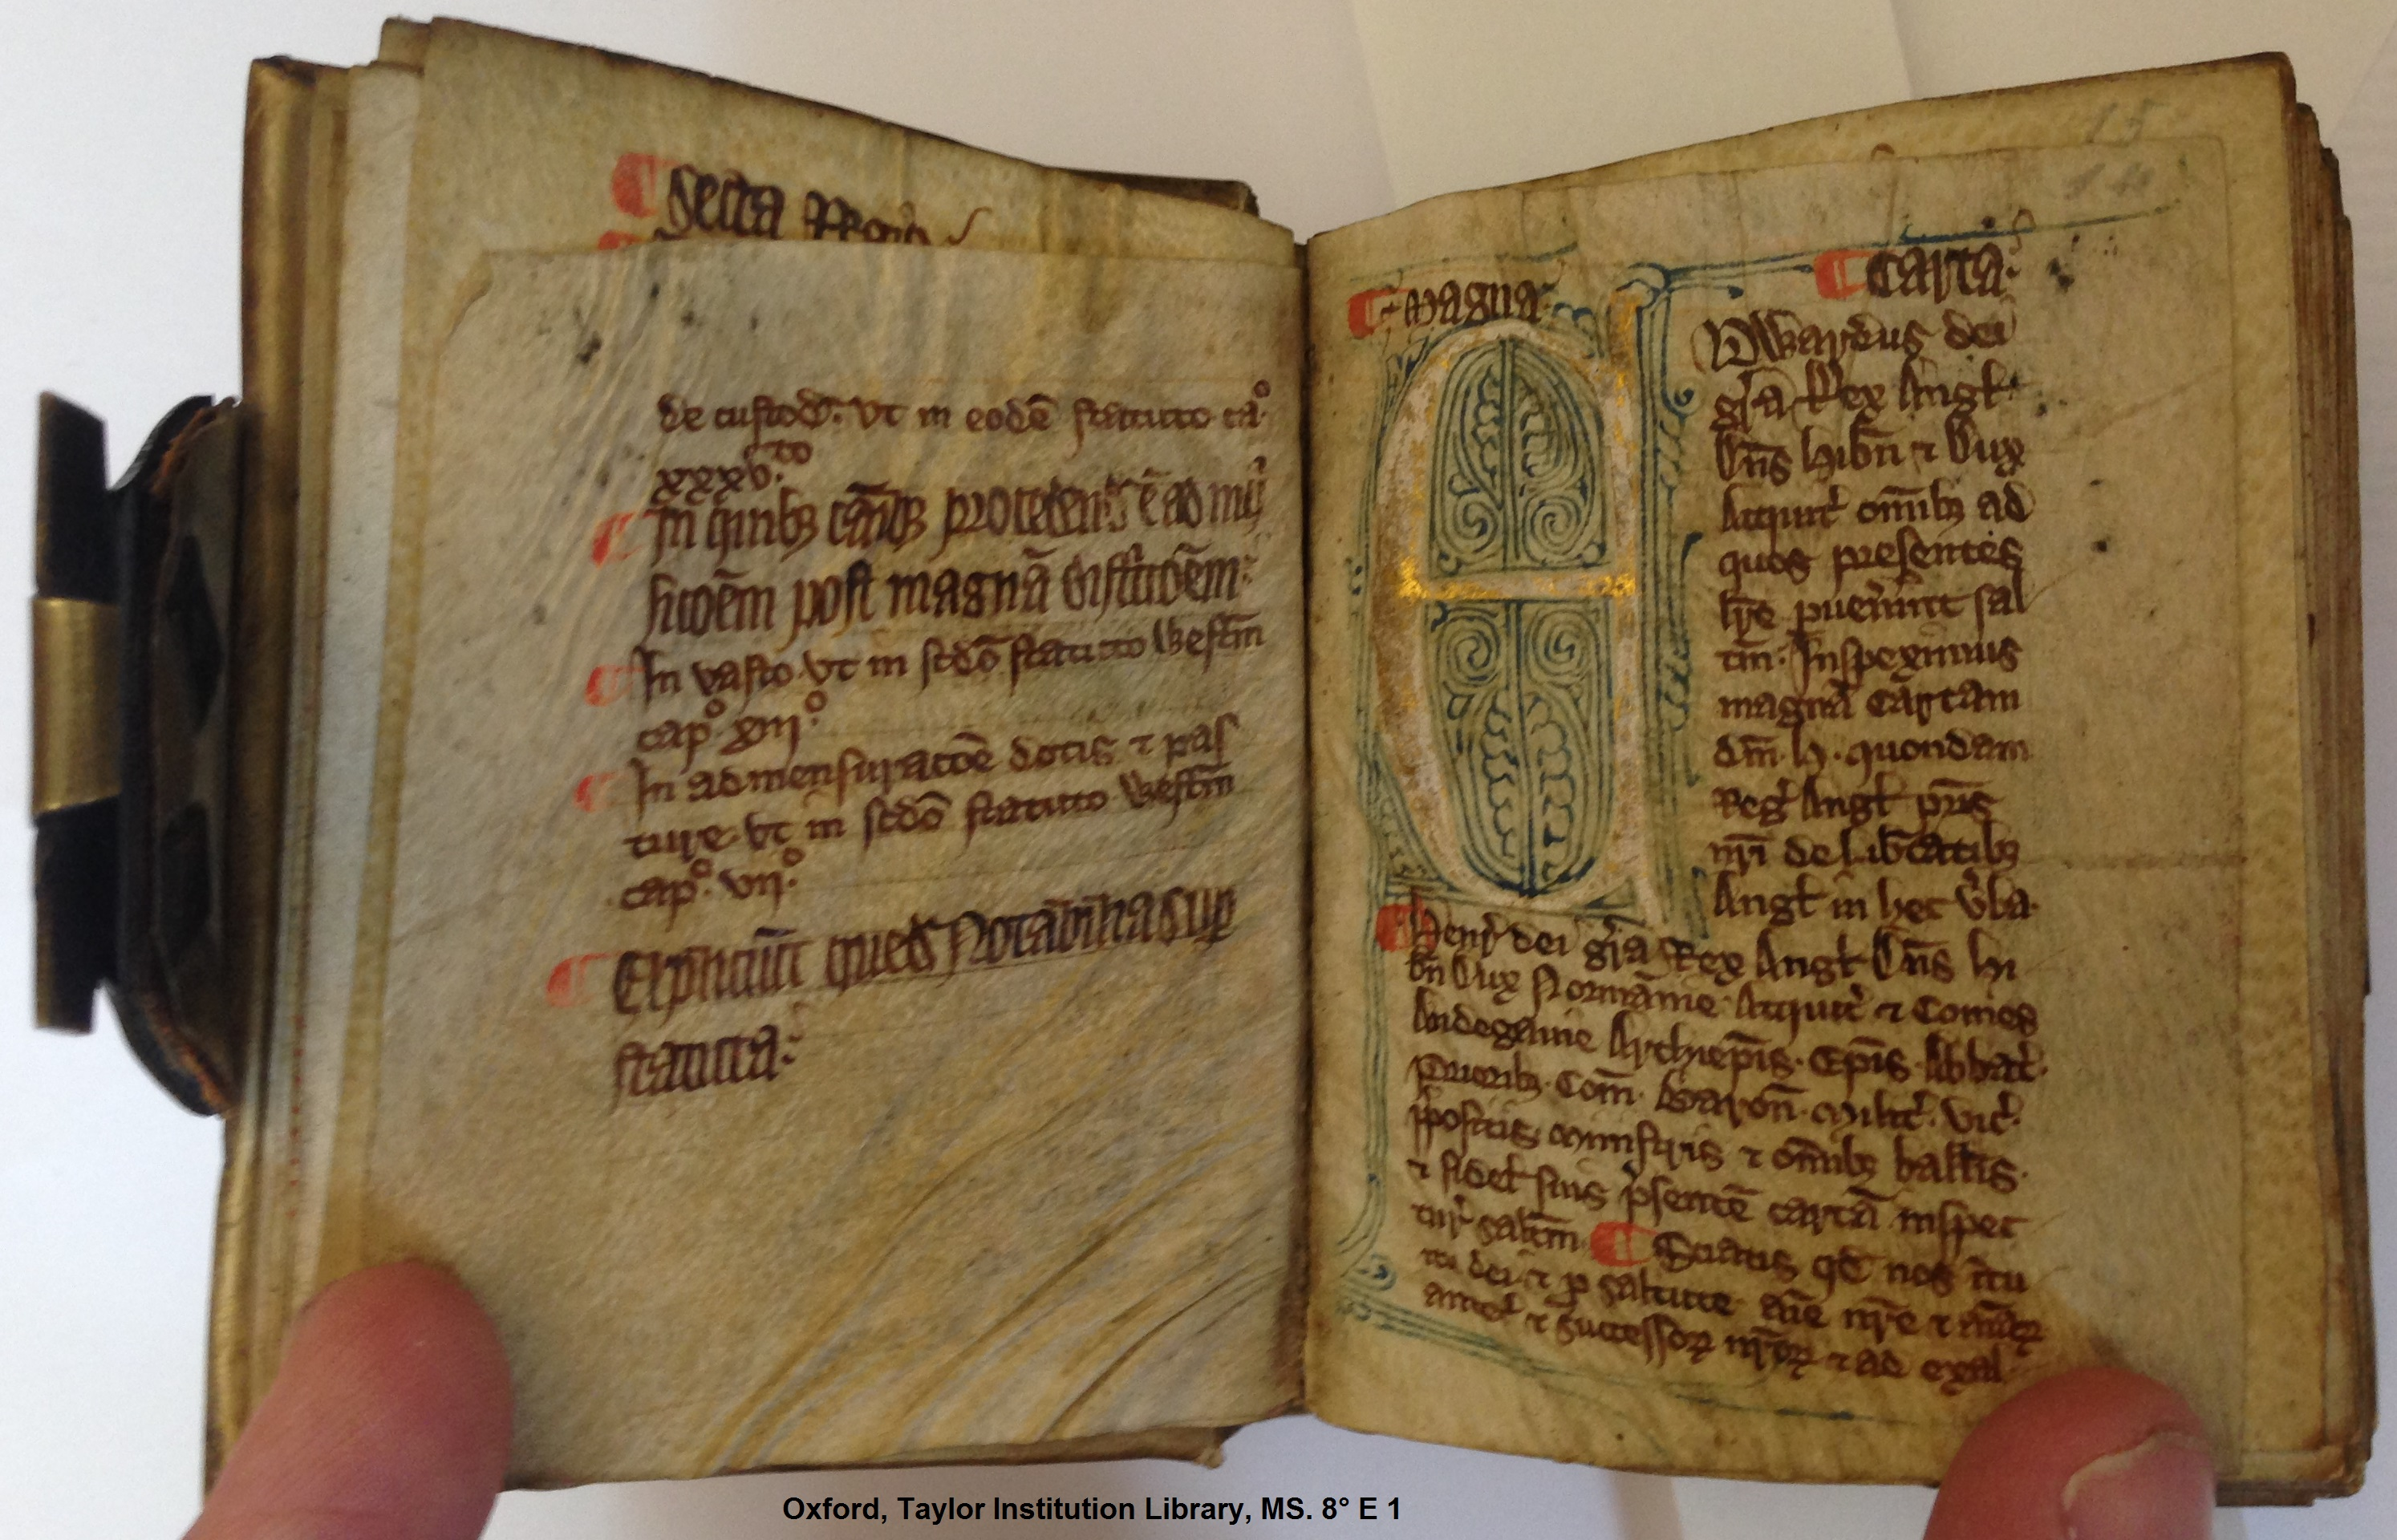 MS. 8° E 1 (Oxford, Taylor Institution Library), fol. 14r.